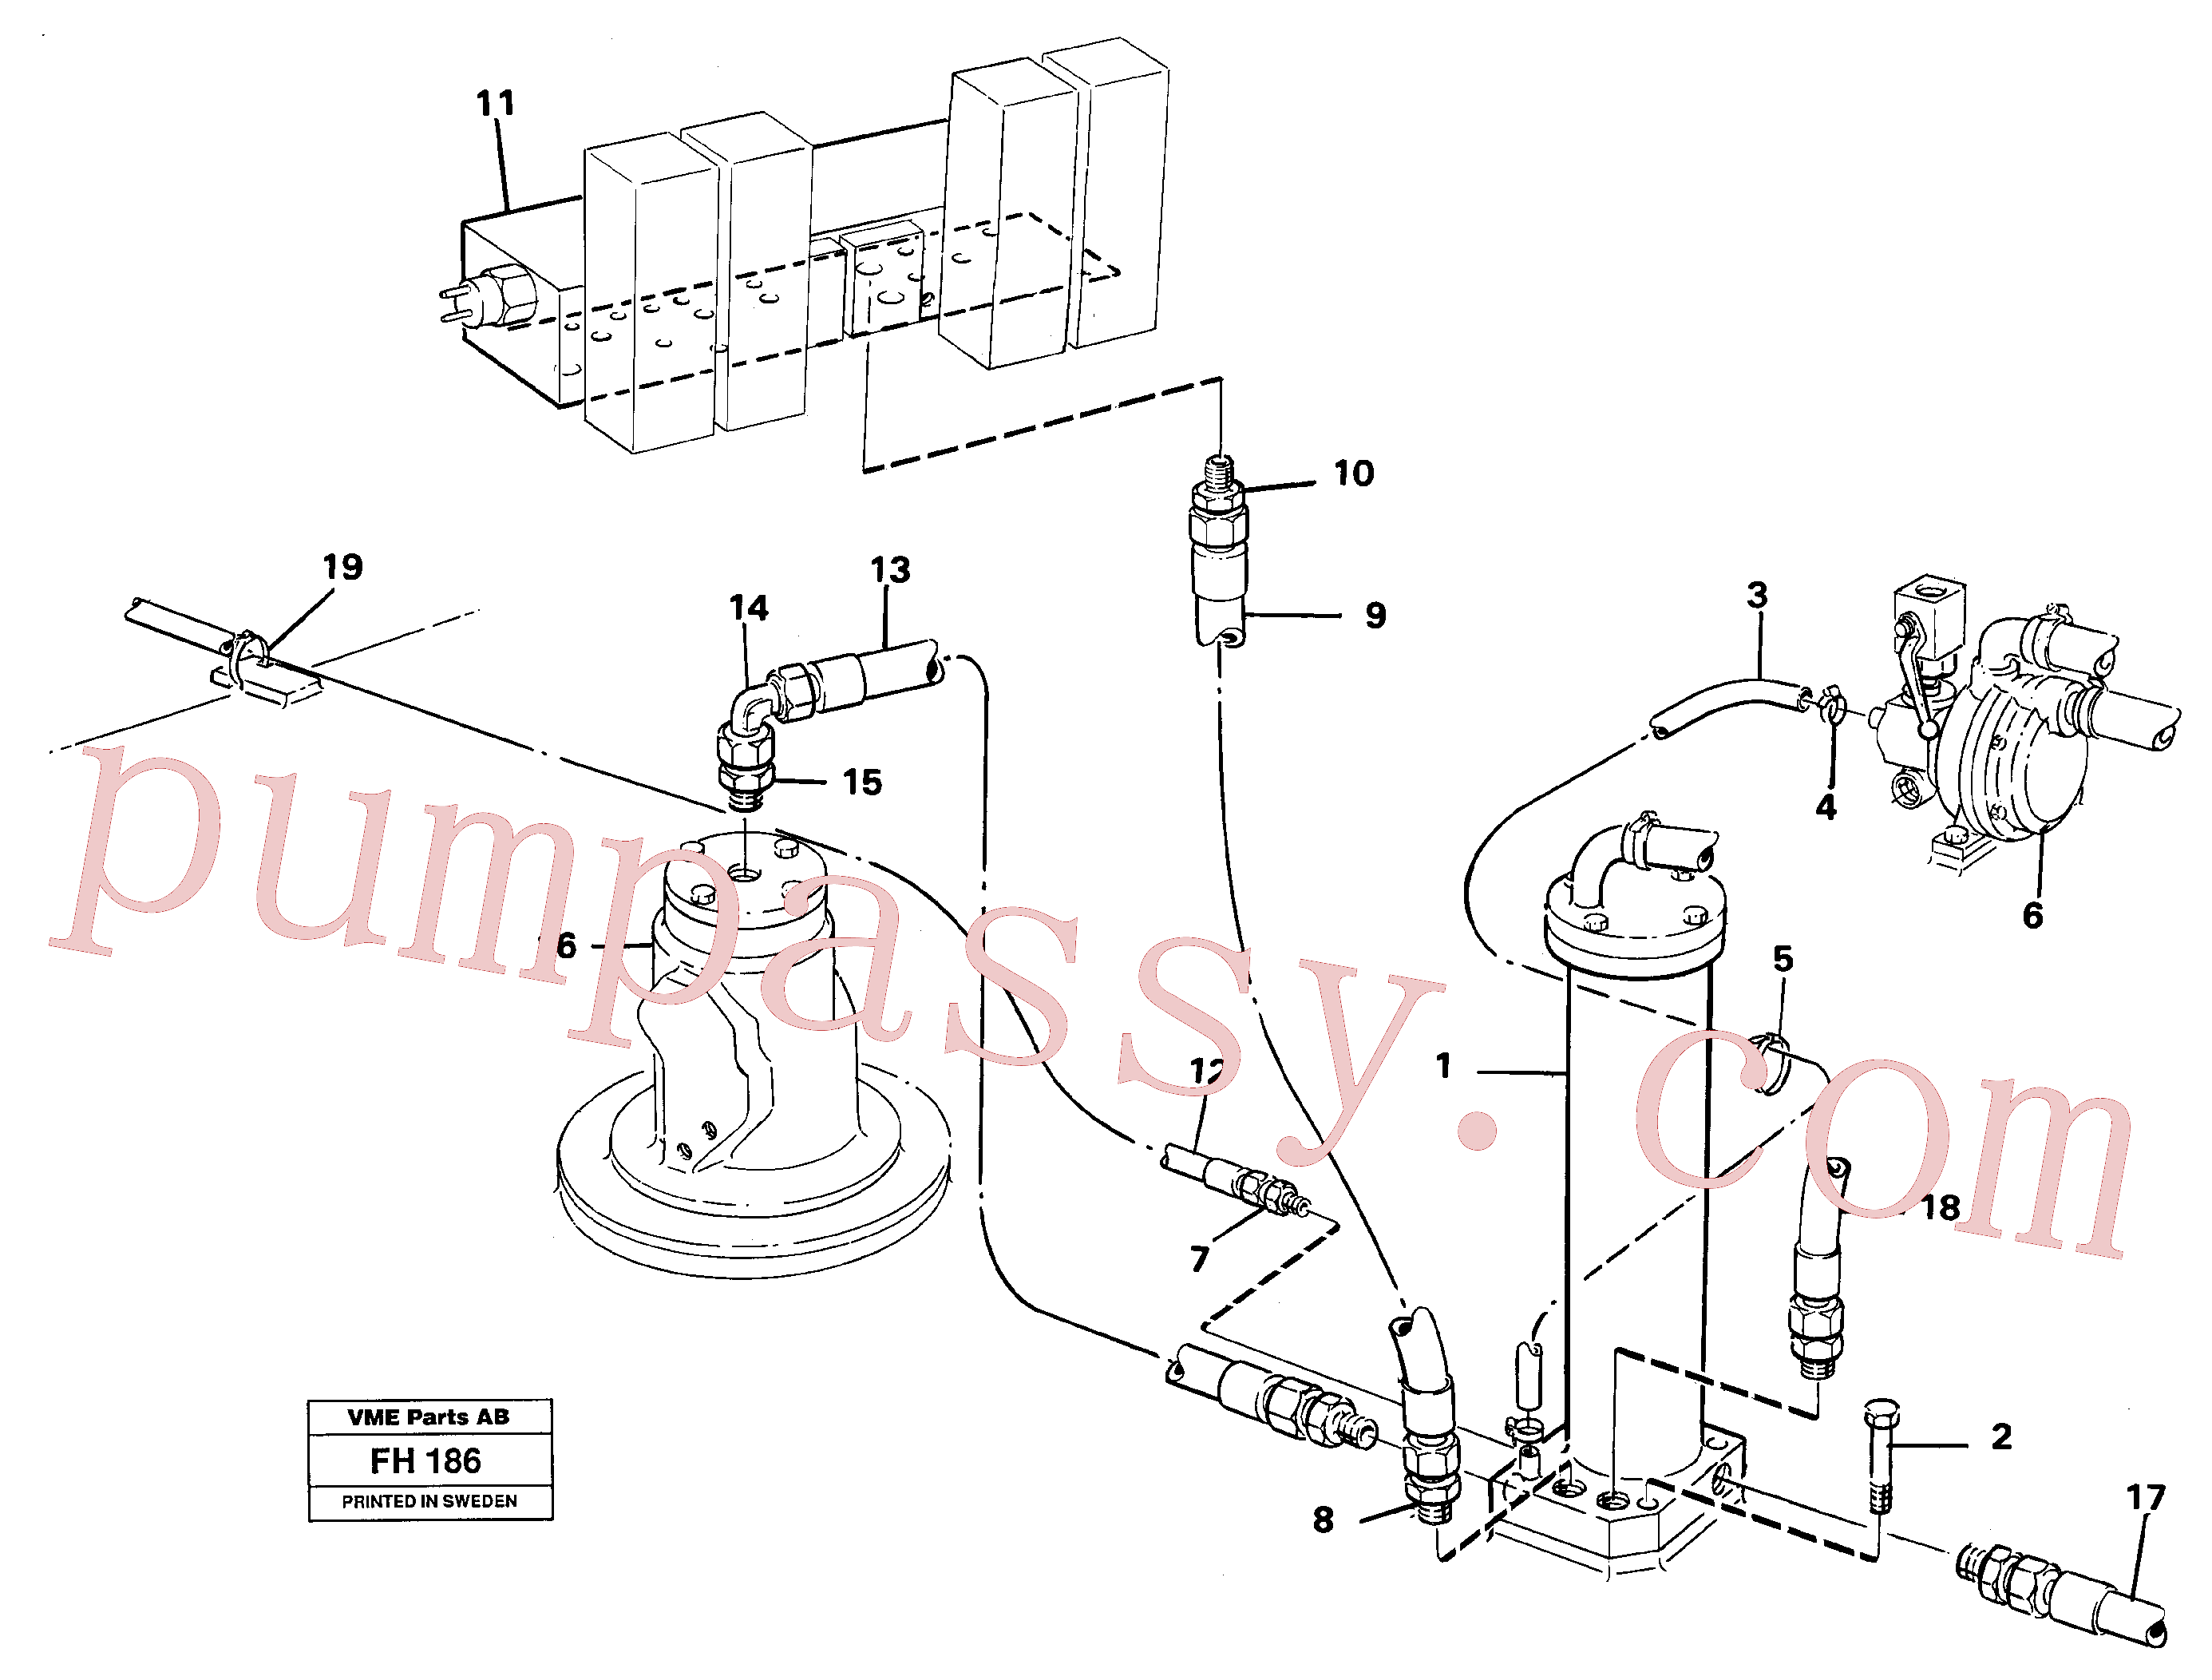 VOE14233336 for Volvo Leak oil filter, with connections(FH186 assembly)